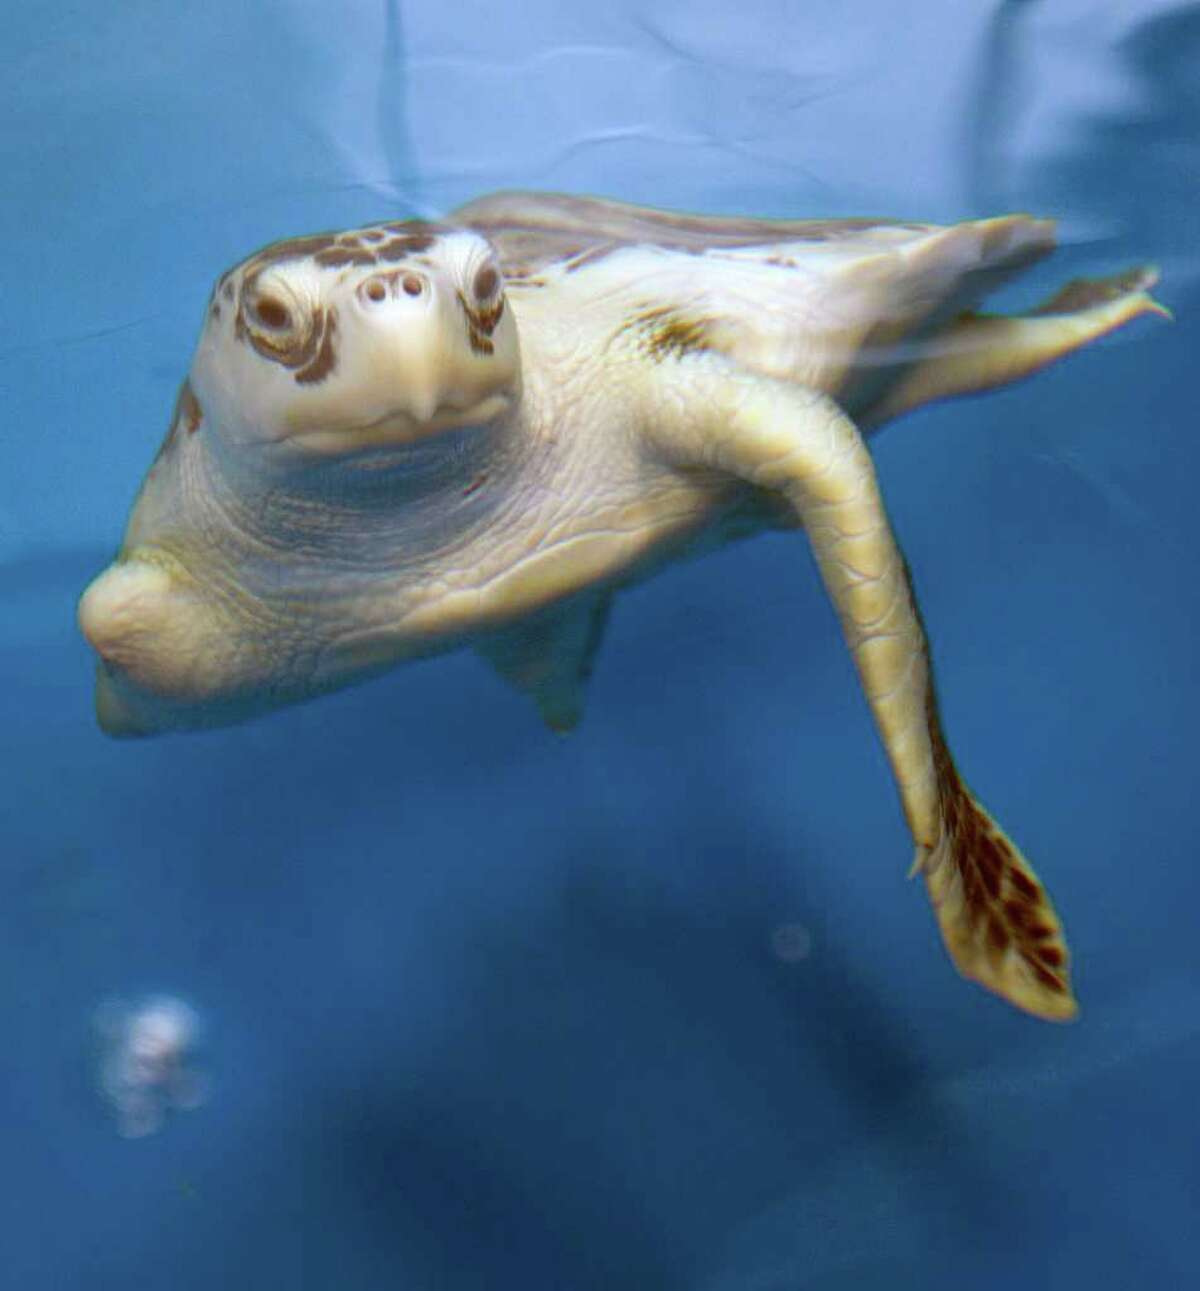 Ancient Sea turtles have been swimming in the oceans for 110 million years, virtually unchanged.